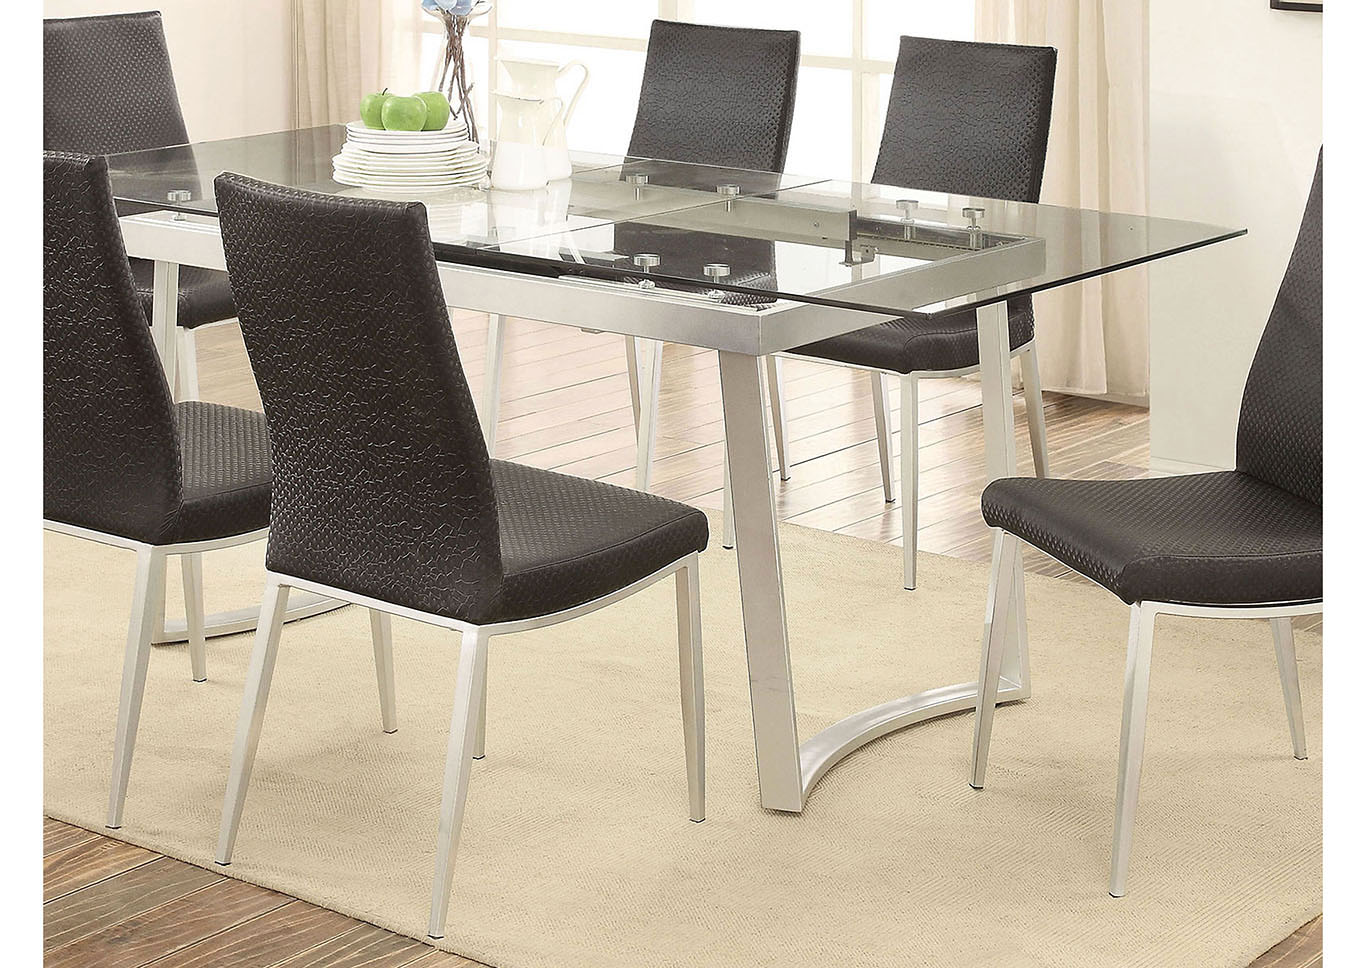 Mariam Silver Glass Top Extension Dining Table W 4 Side ChairsFurniture Of